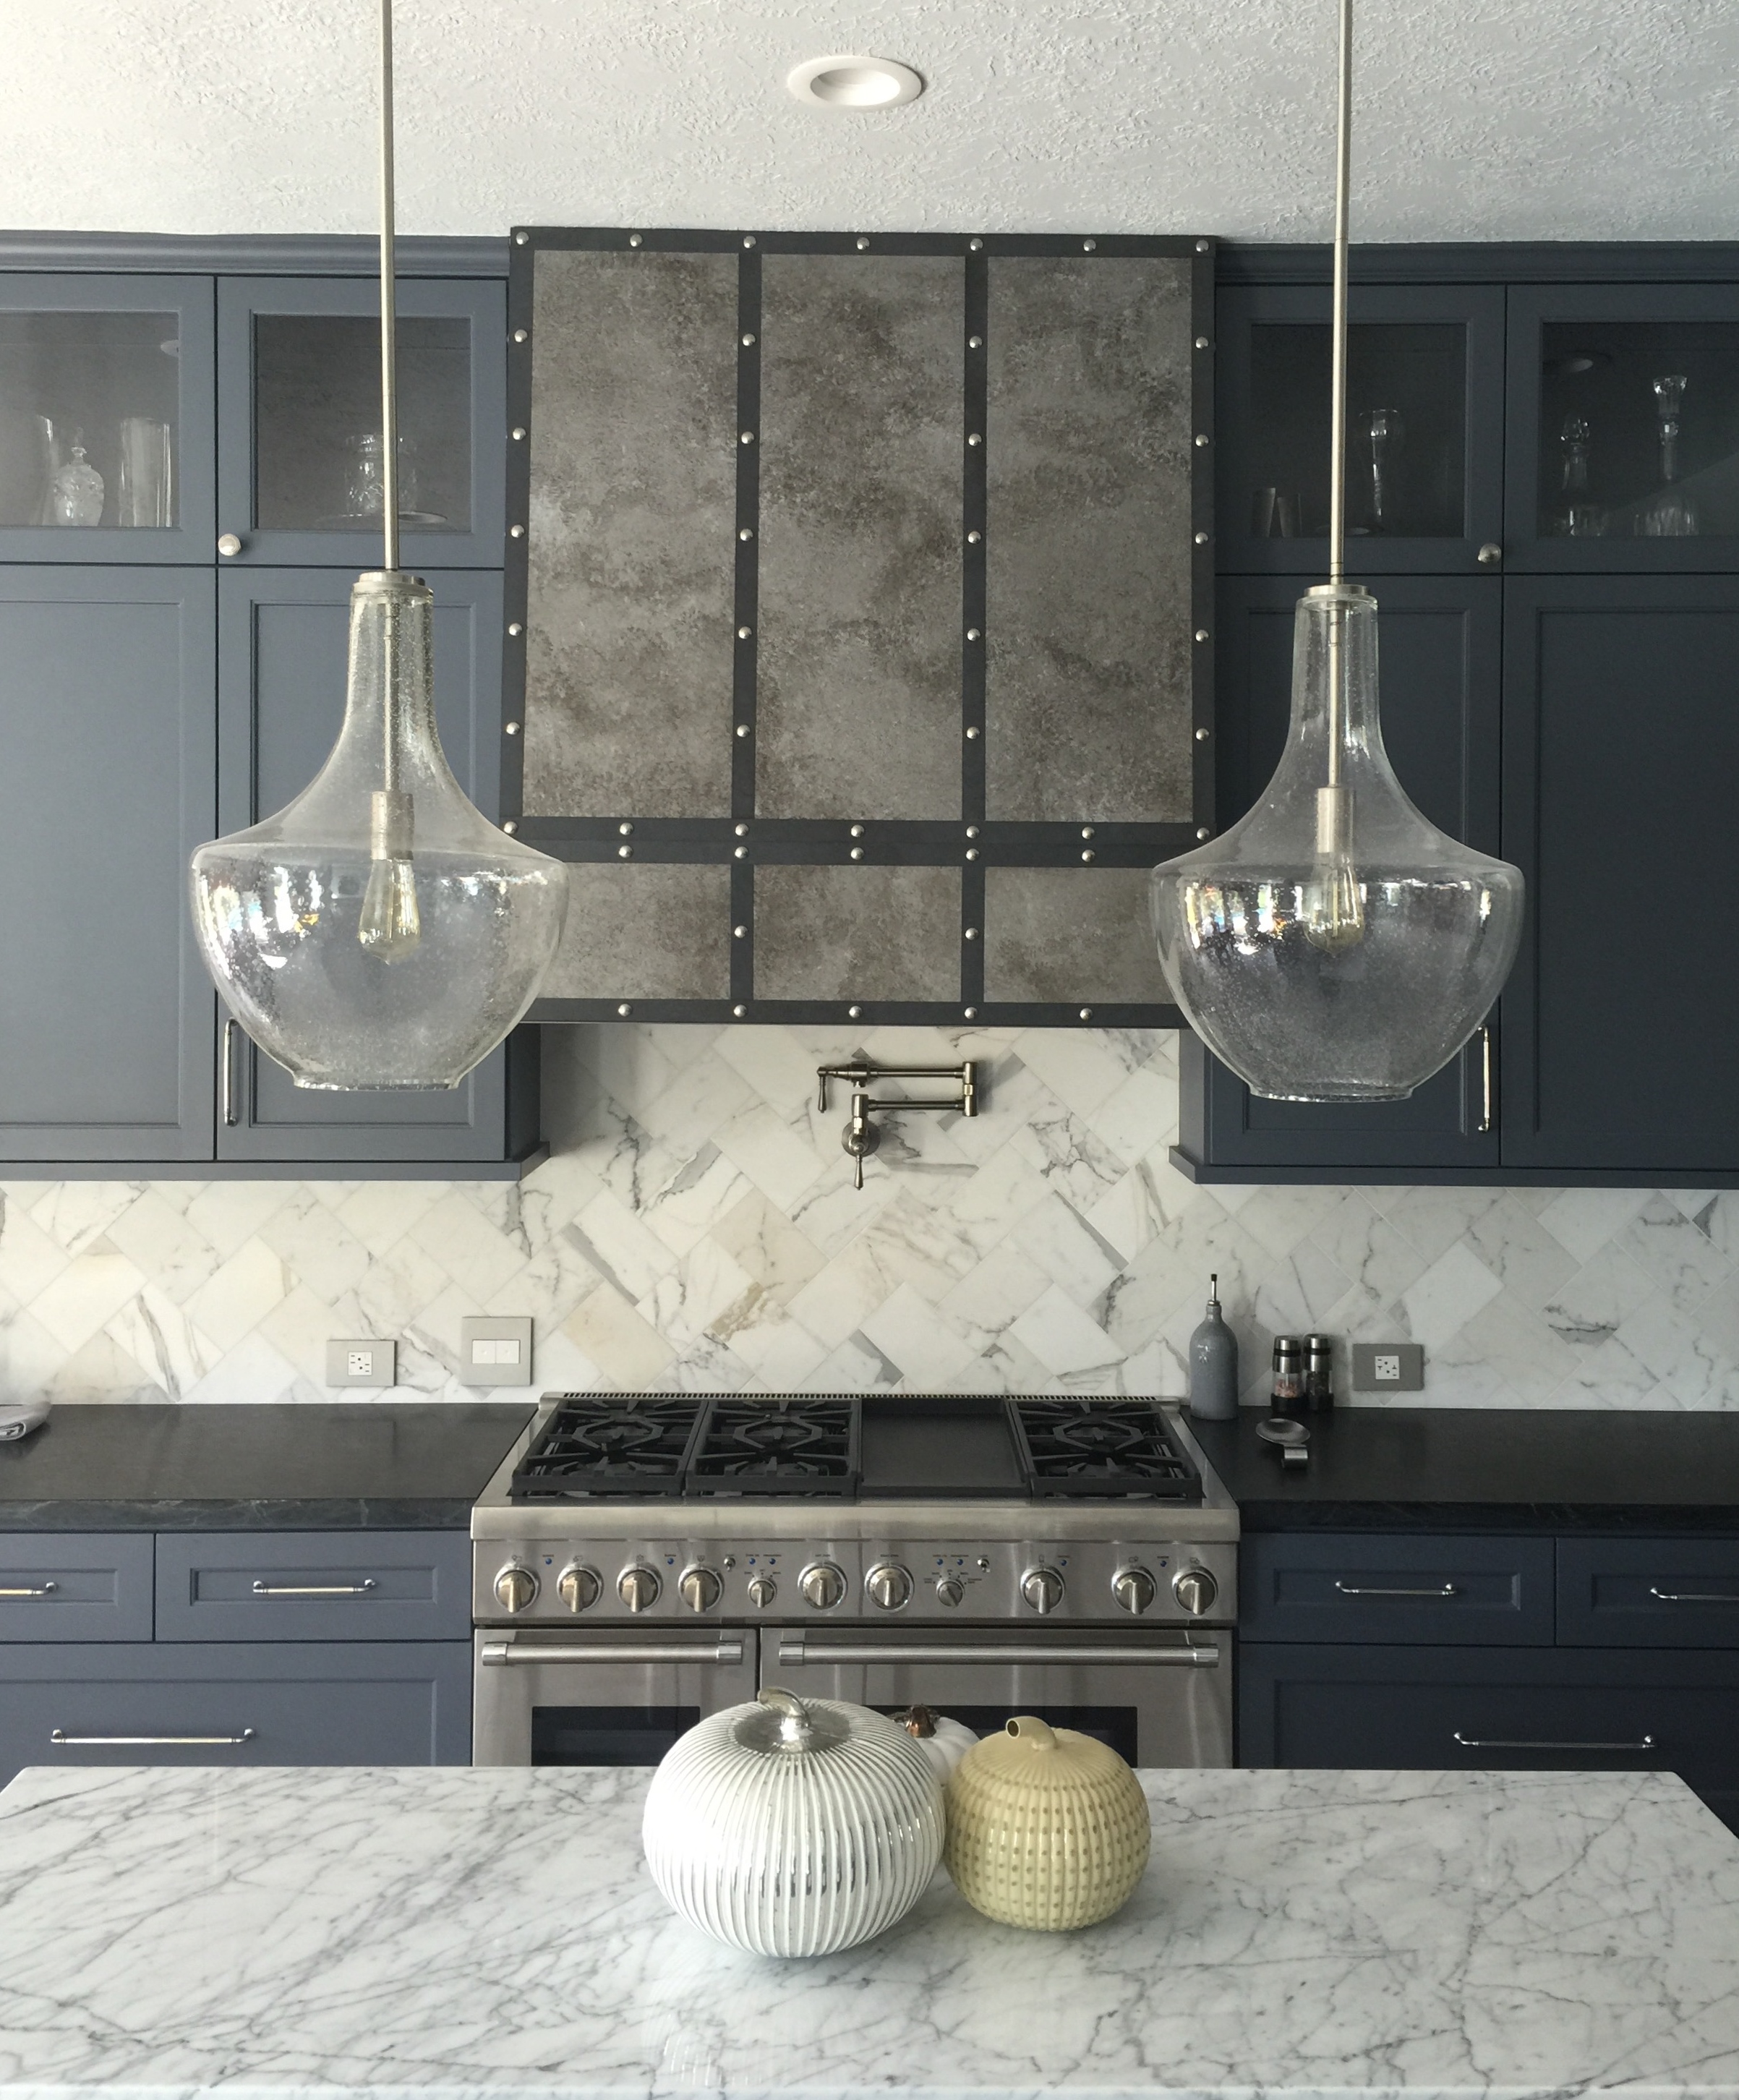 I like the stainless plates on this gray and white marble backsplash kitchen remodel of ours.